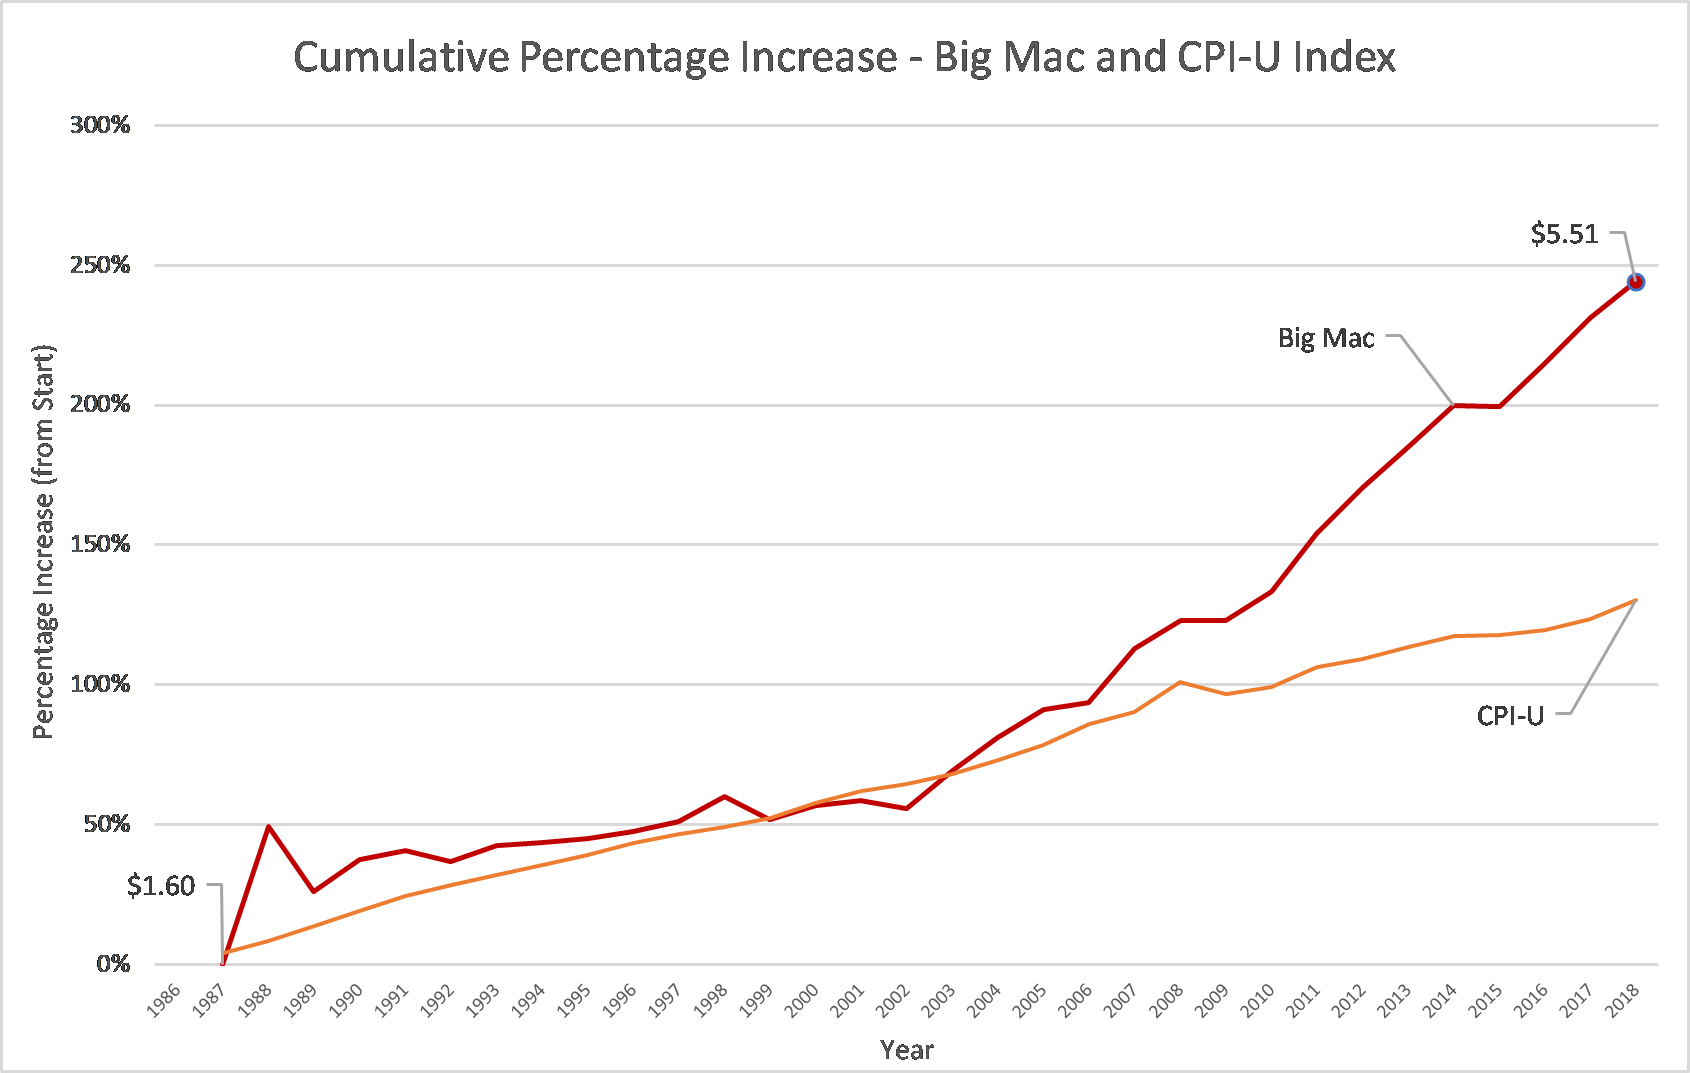 Figure 2 – Cumulative Percentage Increase of the Big Mac and CPI-U Index.